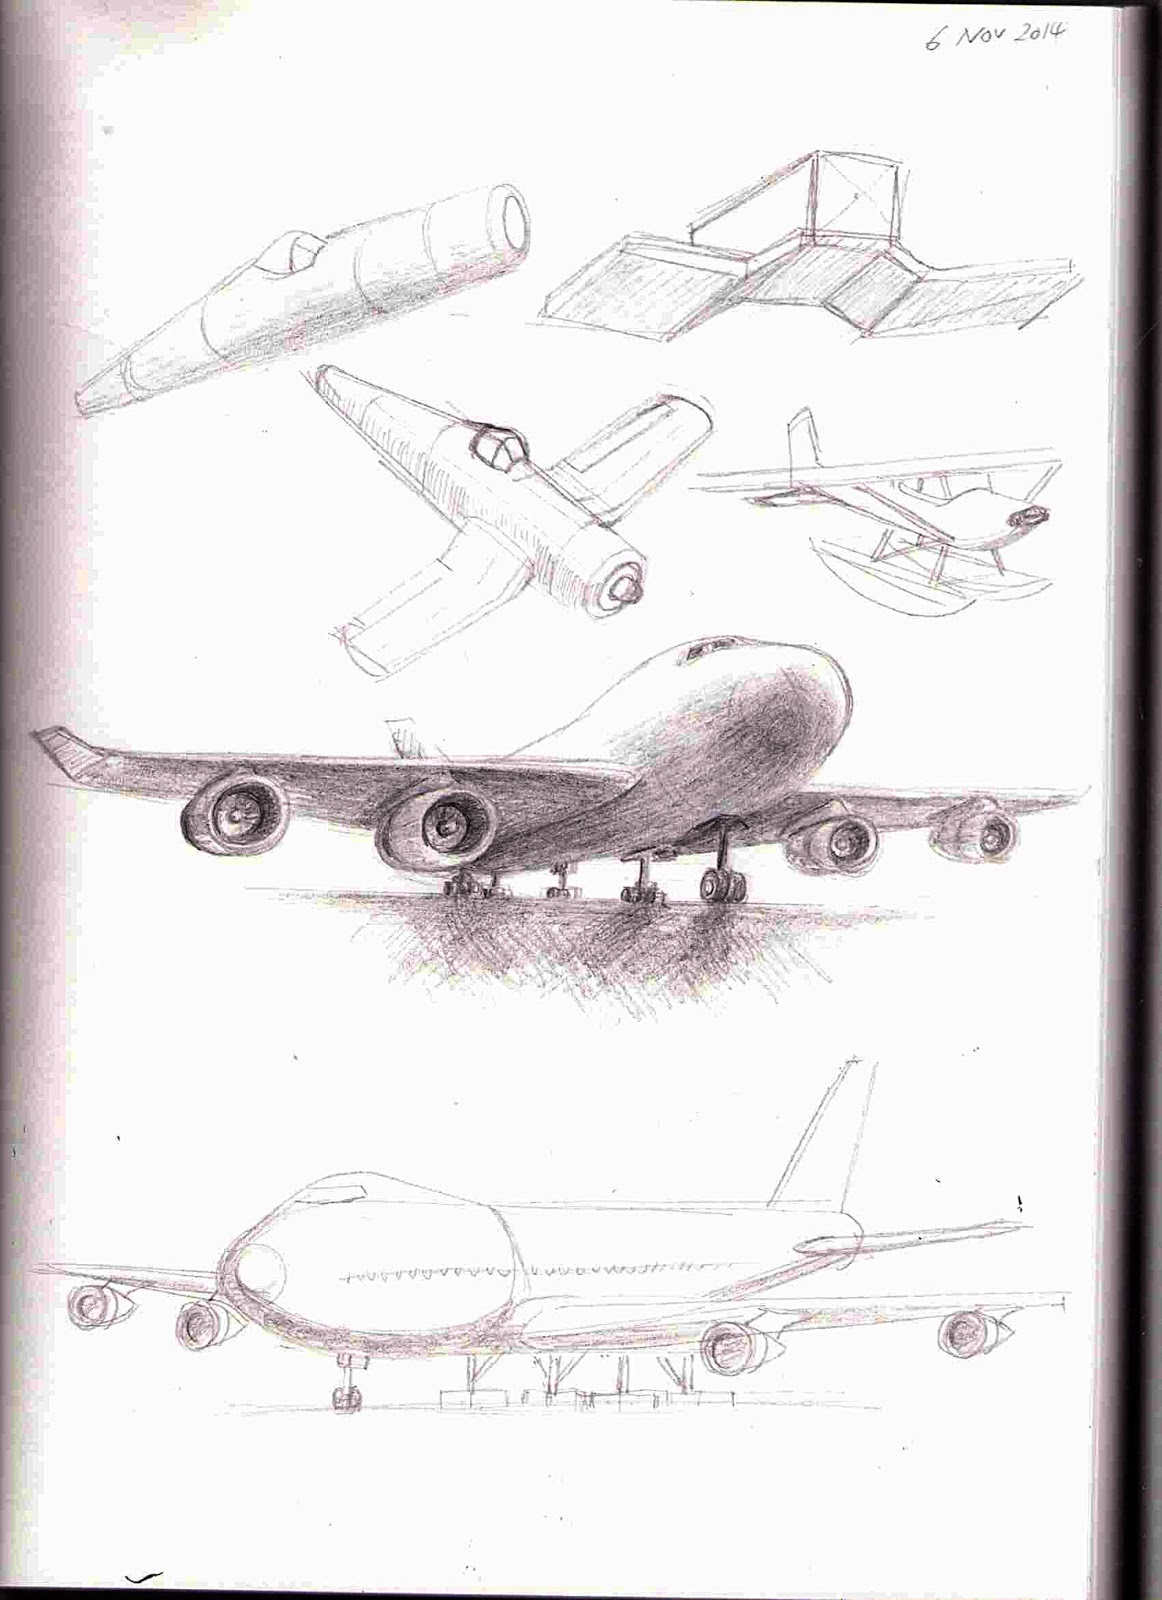 Sketchbook drawings of Boeing 747 Jumbo and F4U Corsair Planes